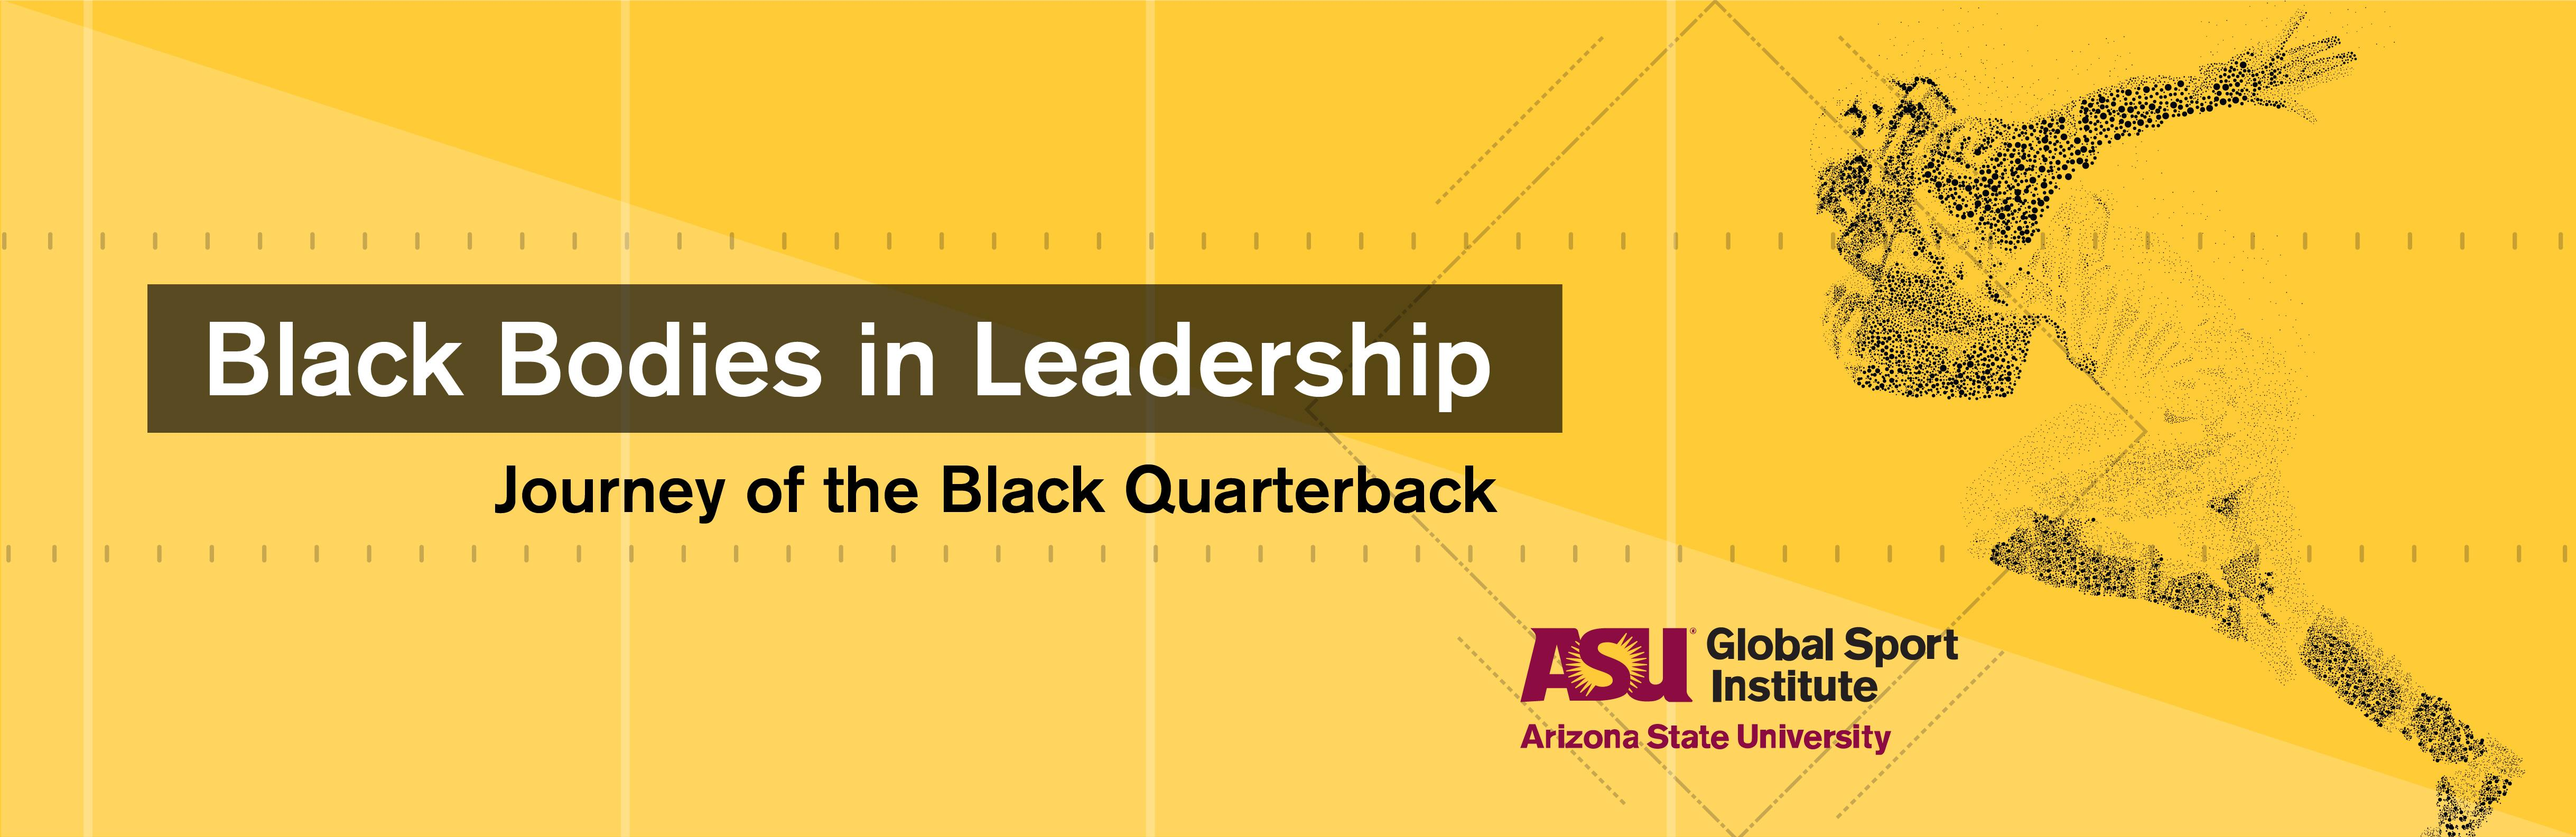 Black Bodies in Leadership: The Journey of the Black Quarterback